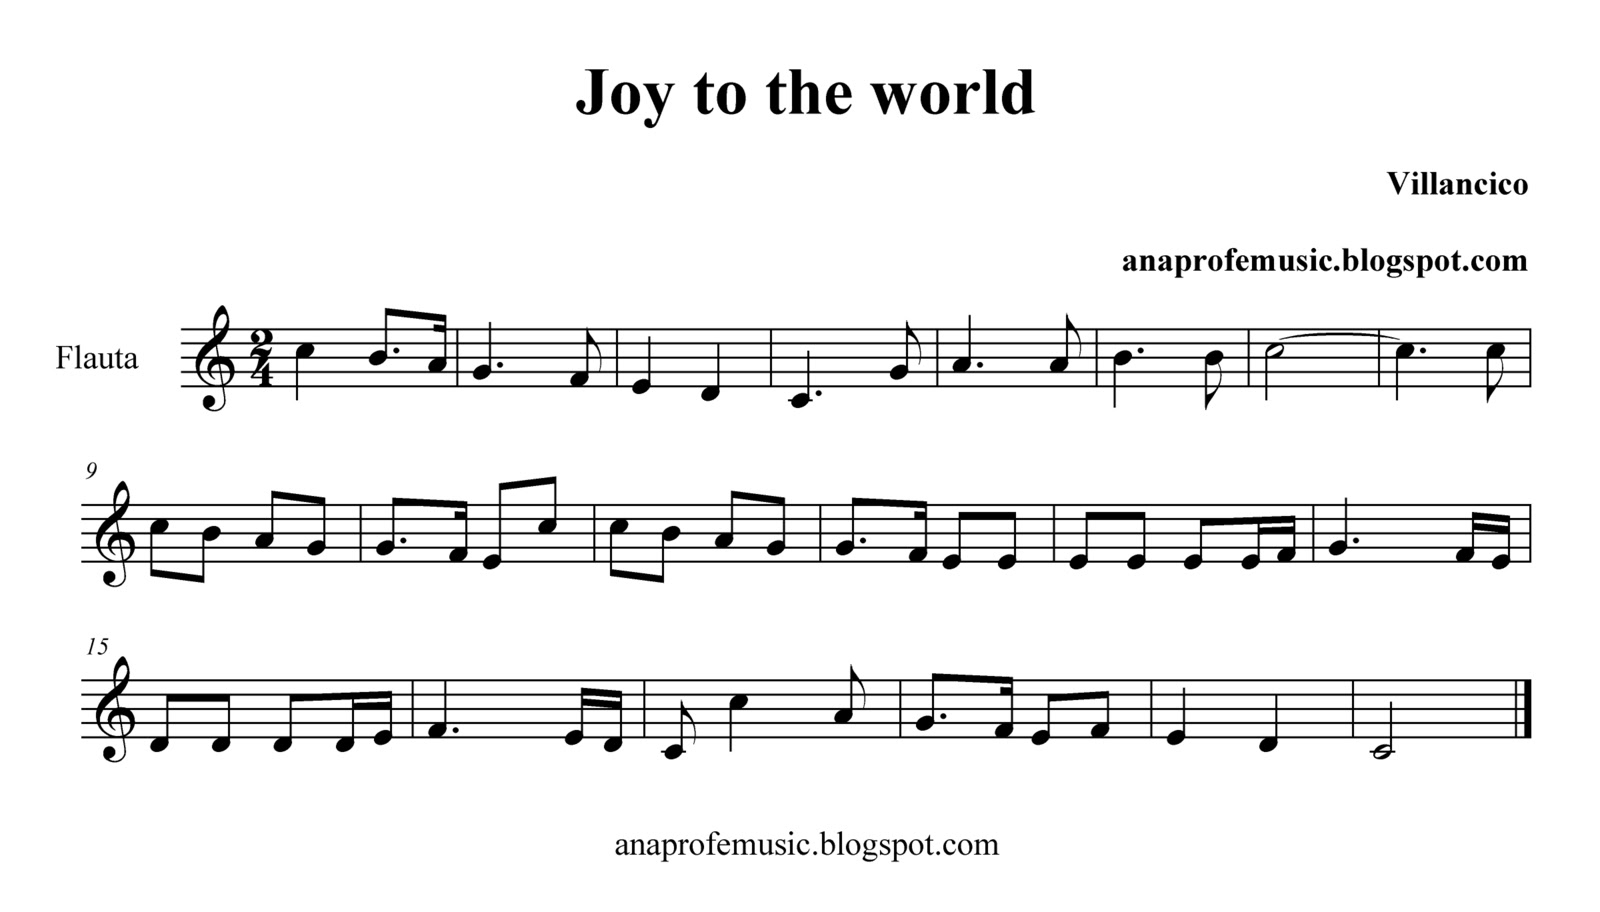 Anaprofemusic partitura joy to the world sheet music